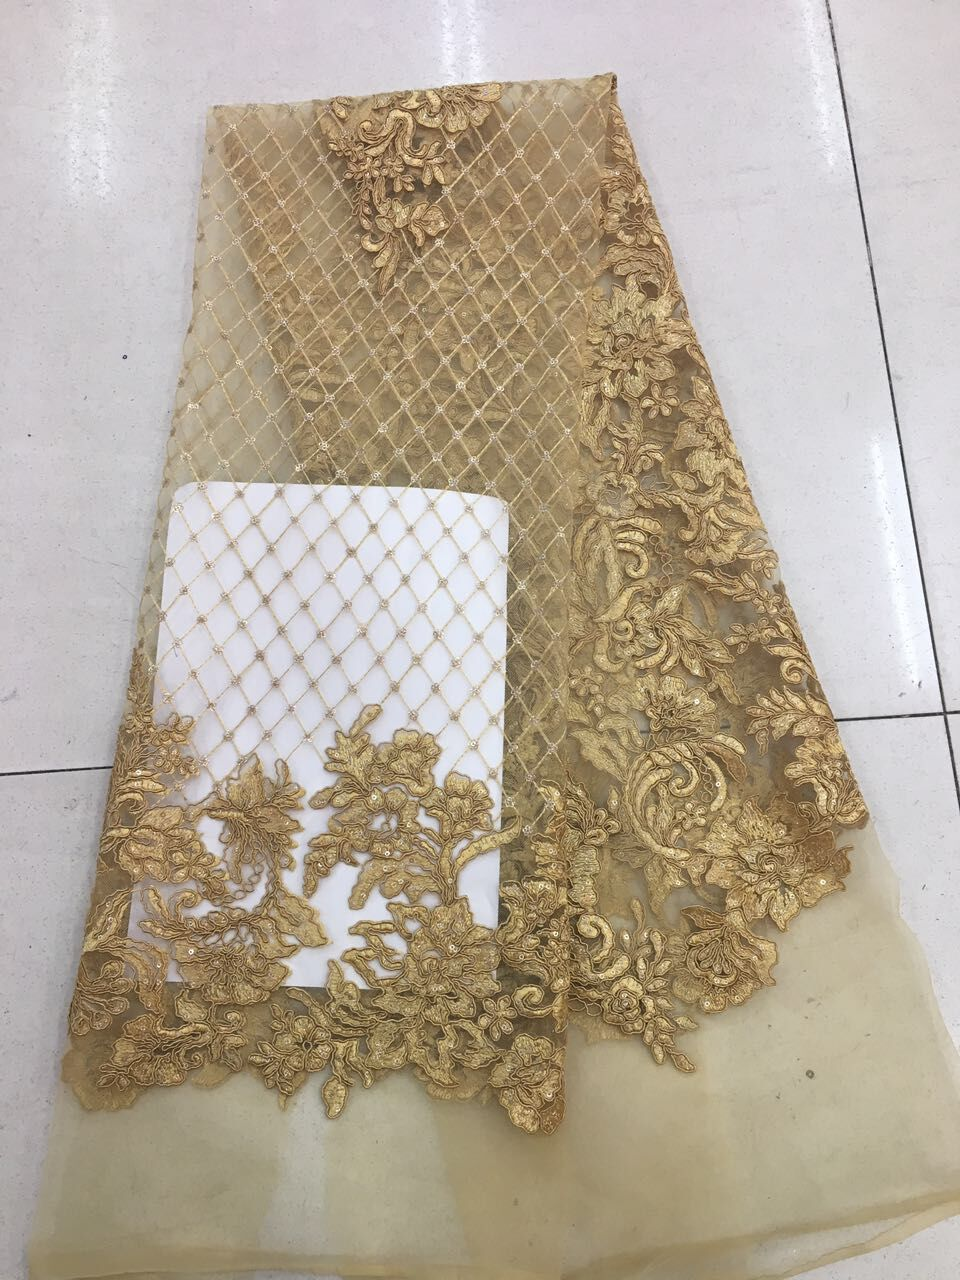 newest african french net lace fabric super quality CiCi 51215 nigerian cord lace with sequins Free